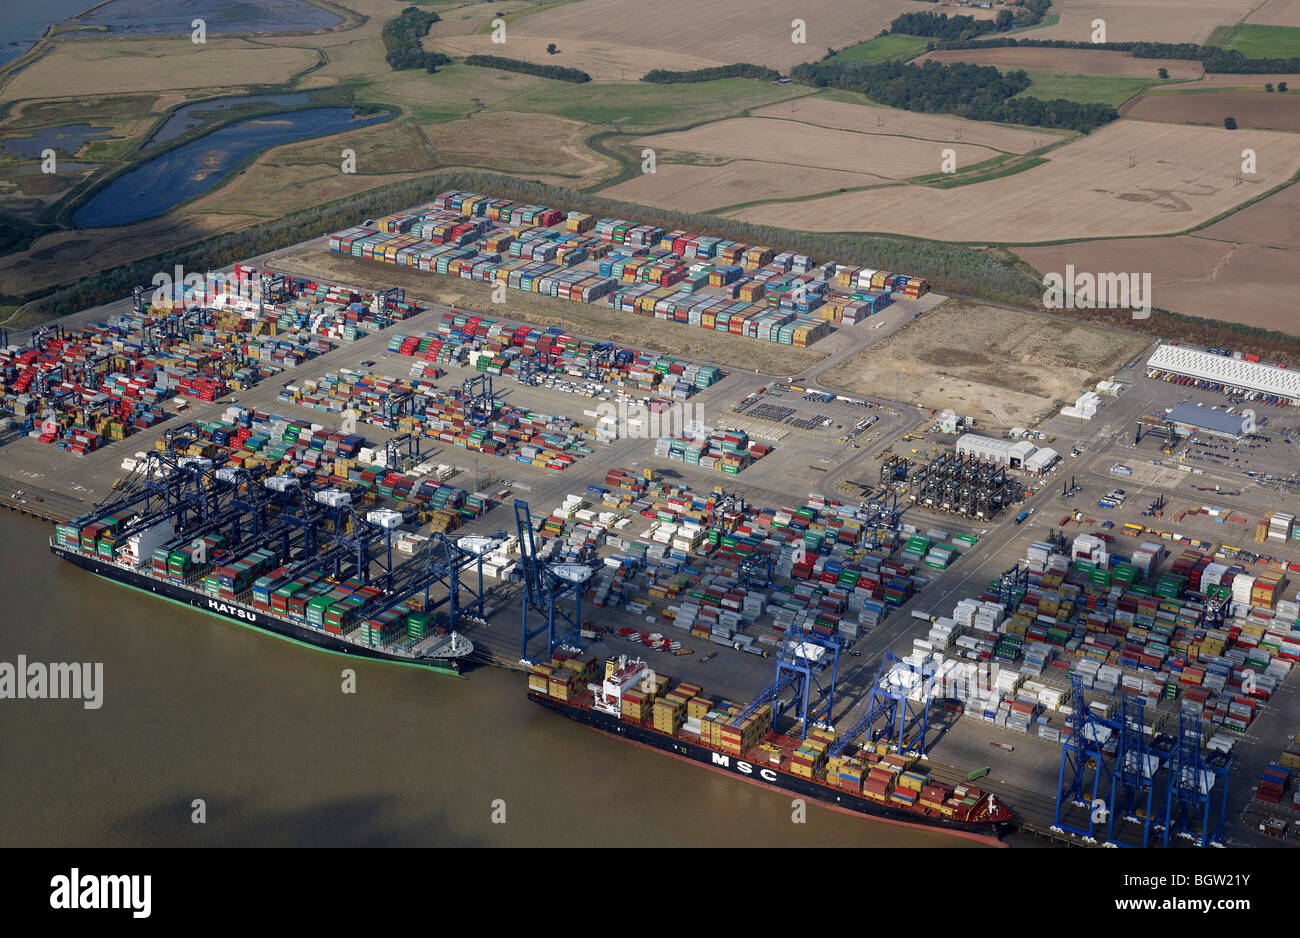 Felixstowe Port, from the Air, Summer 2009, Eastern England - Stock Image